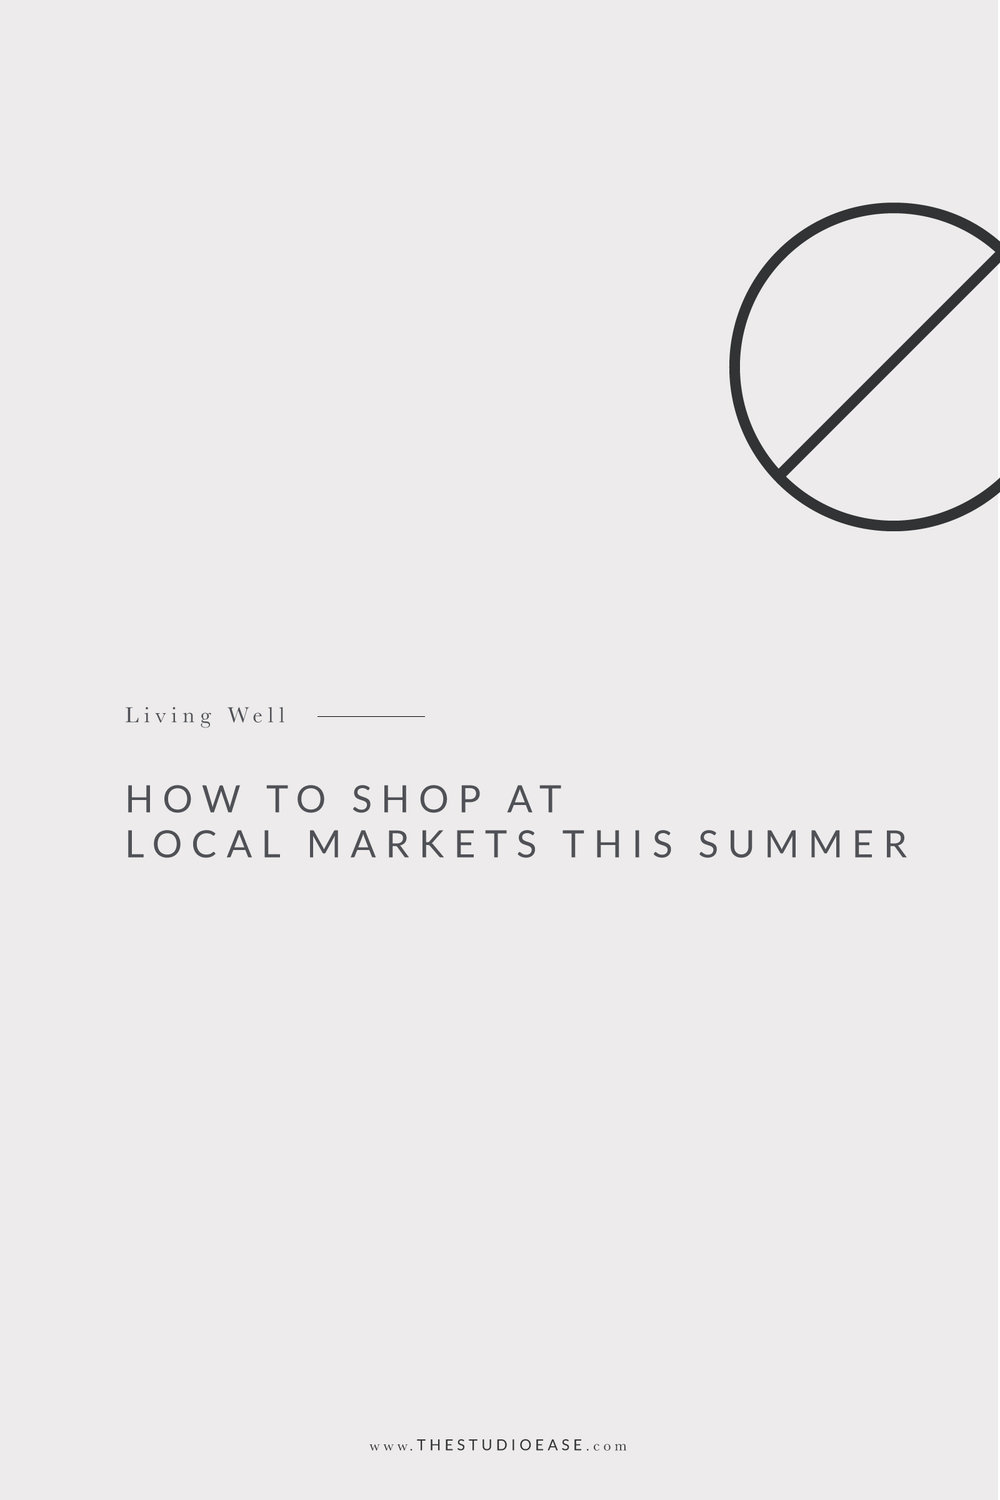 How to Shop at Local Markets this Summer by Studio Ease #farmersmarket #summerrecipes #summereating local markets, farmers markets, shop local, in season fruit, meal planning, grocery planning, summer nutrition tips, summer recipes